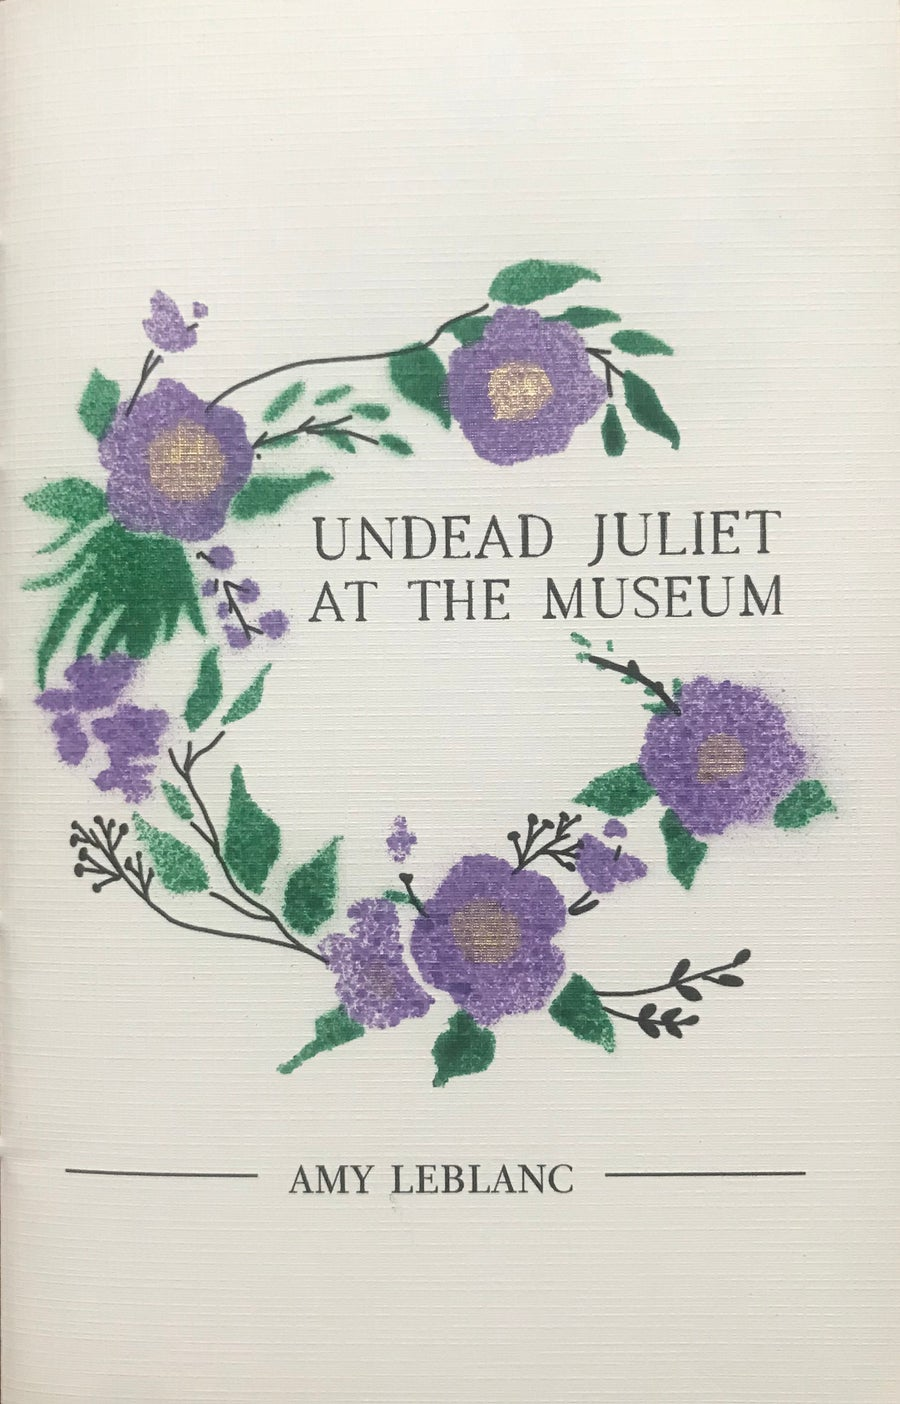 """Image of """"Undead Juliet at the Museum"""" by Amy LeBlanc"""